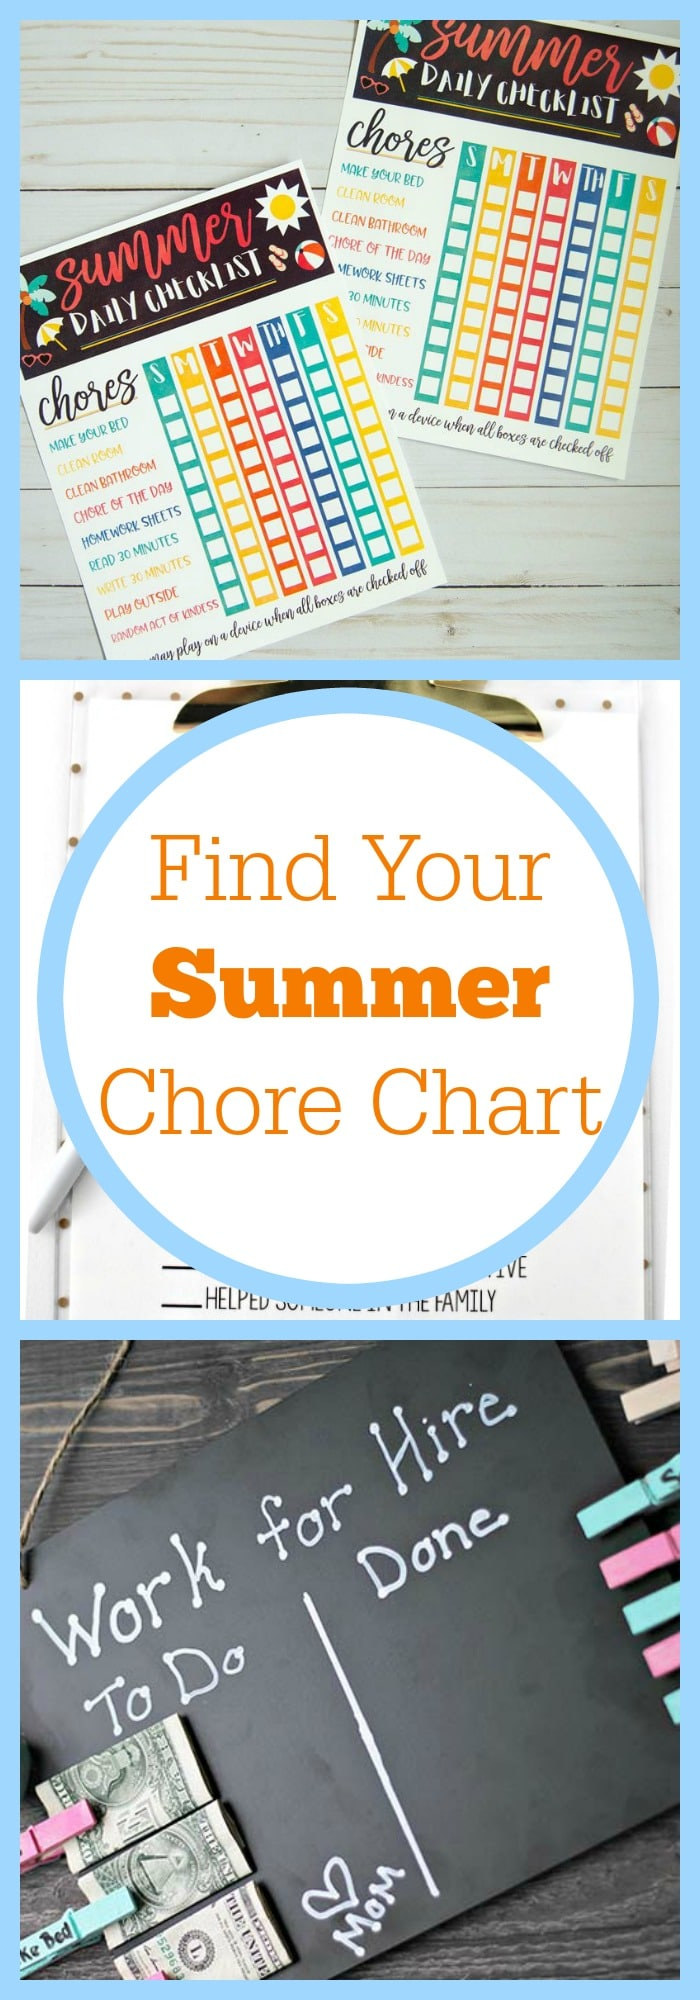 Find Your Summer Chore Chart